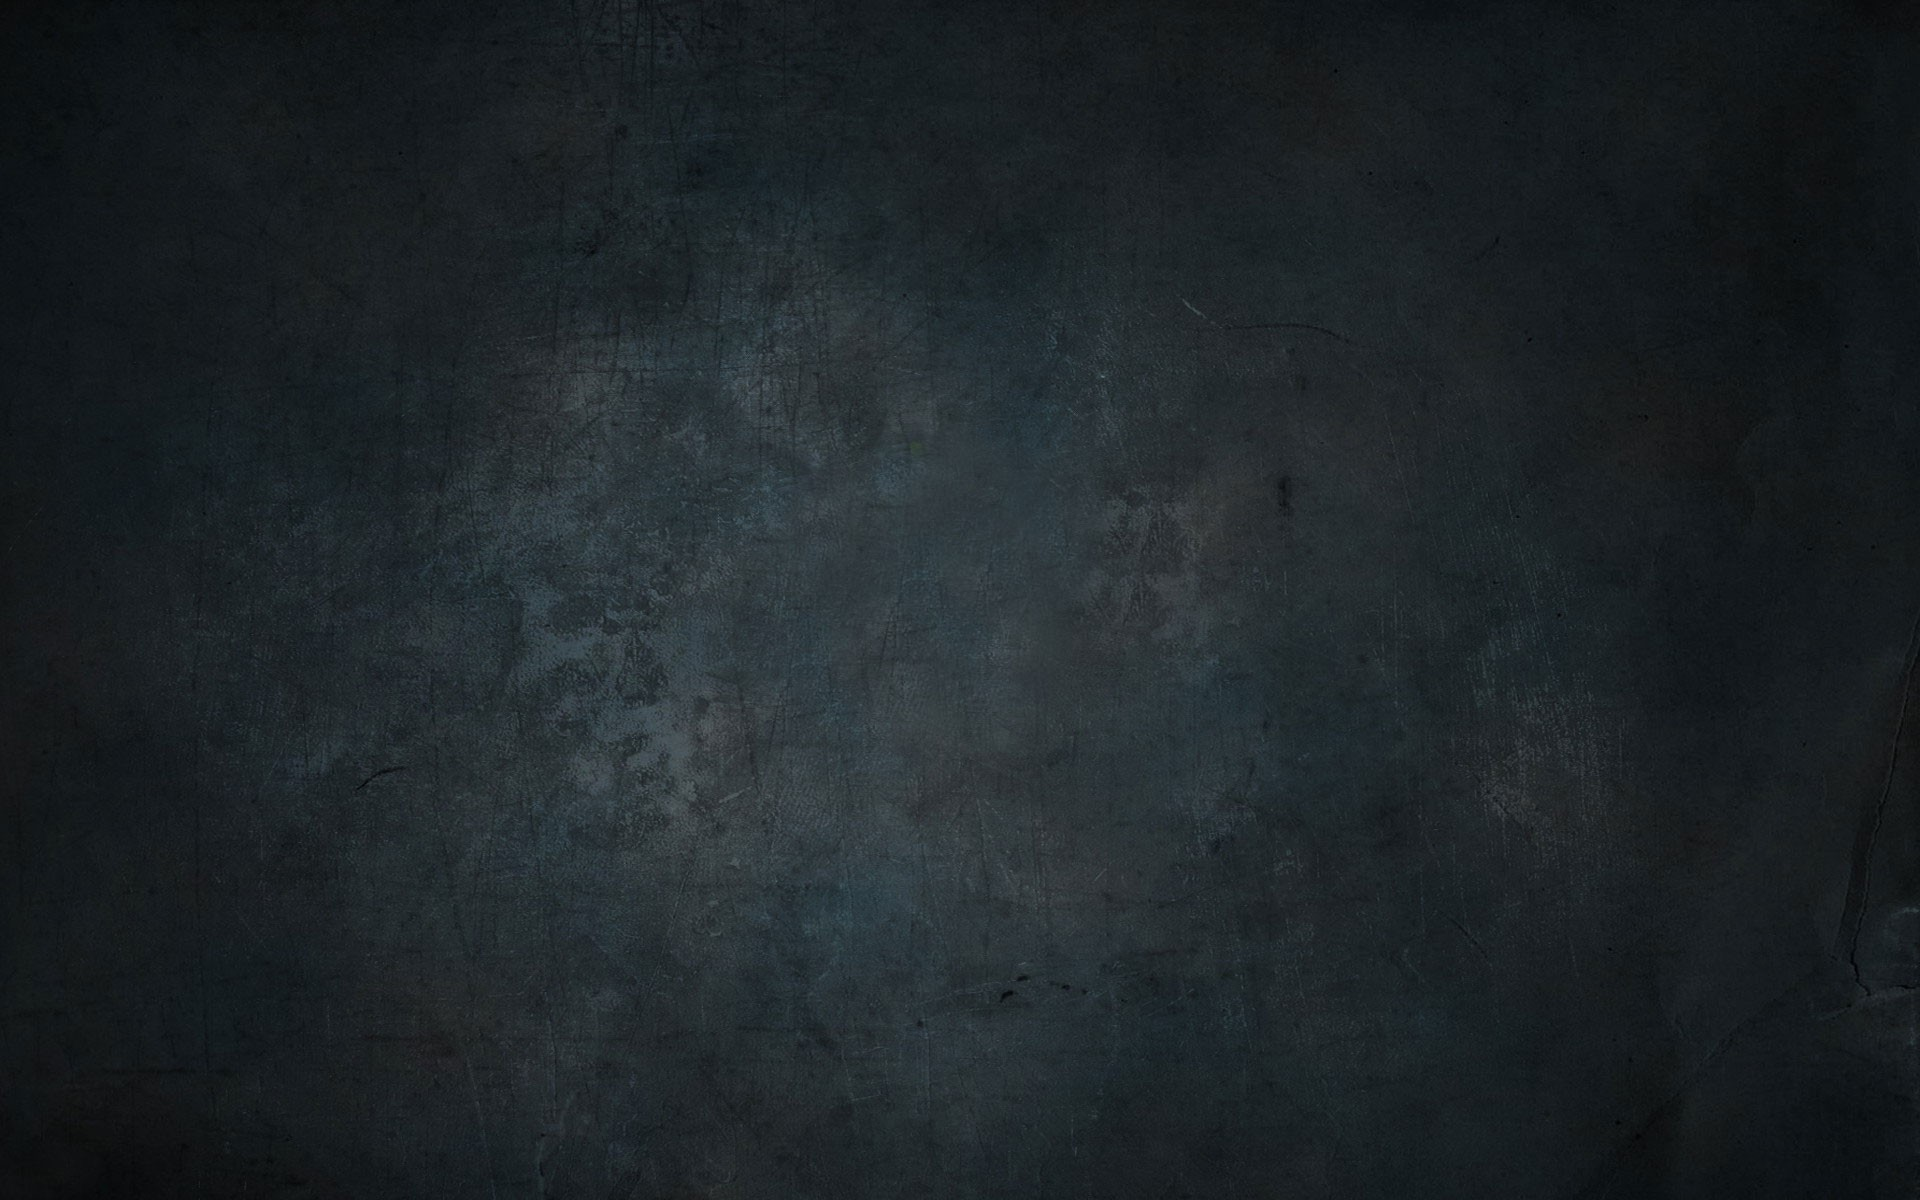 dark grey texture abstract hd wallpaper 19201200 1223 Imperial 1920x1200